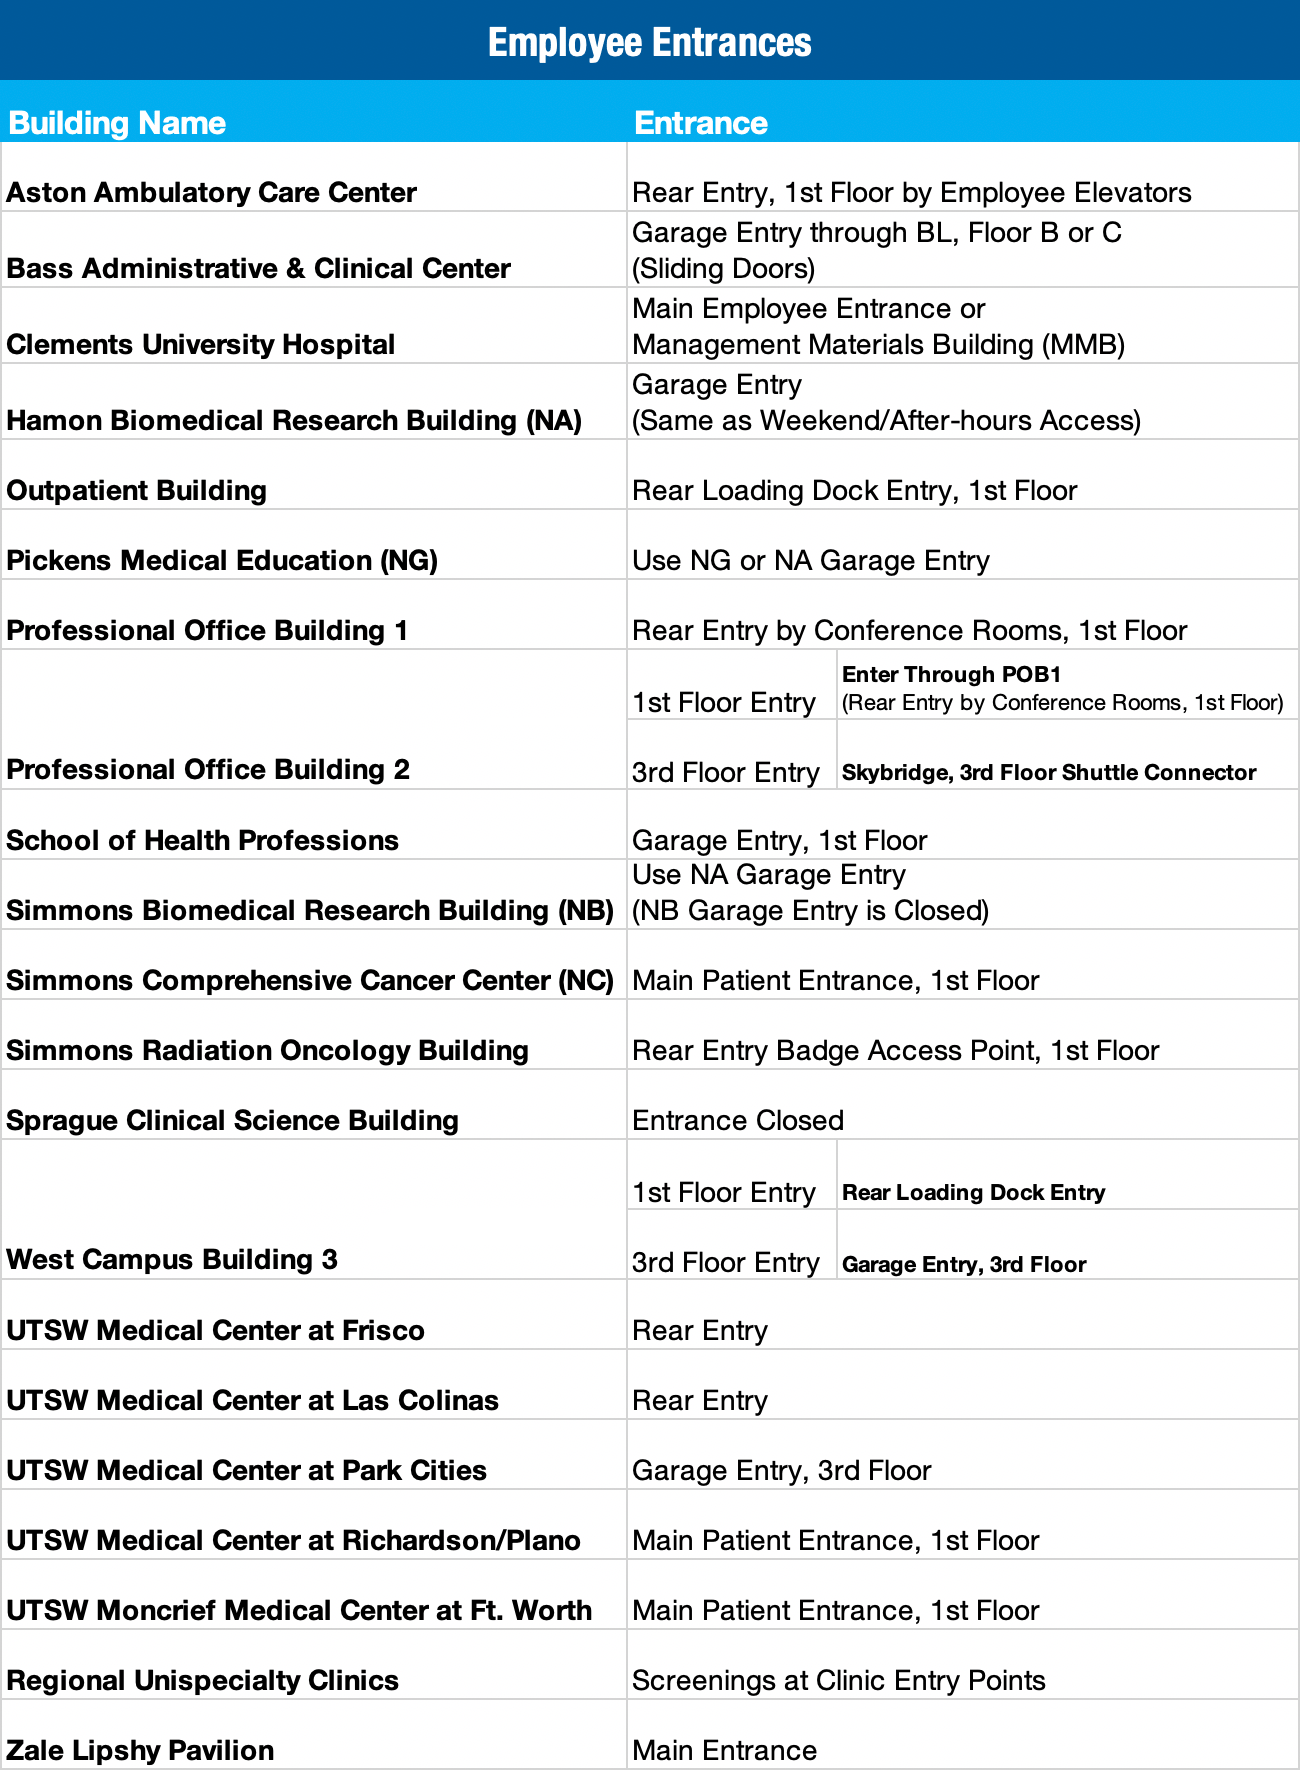 Employee access points for other UTSW buildings and clinics